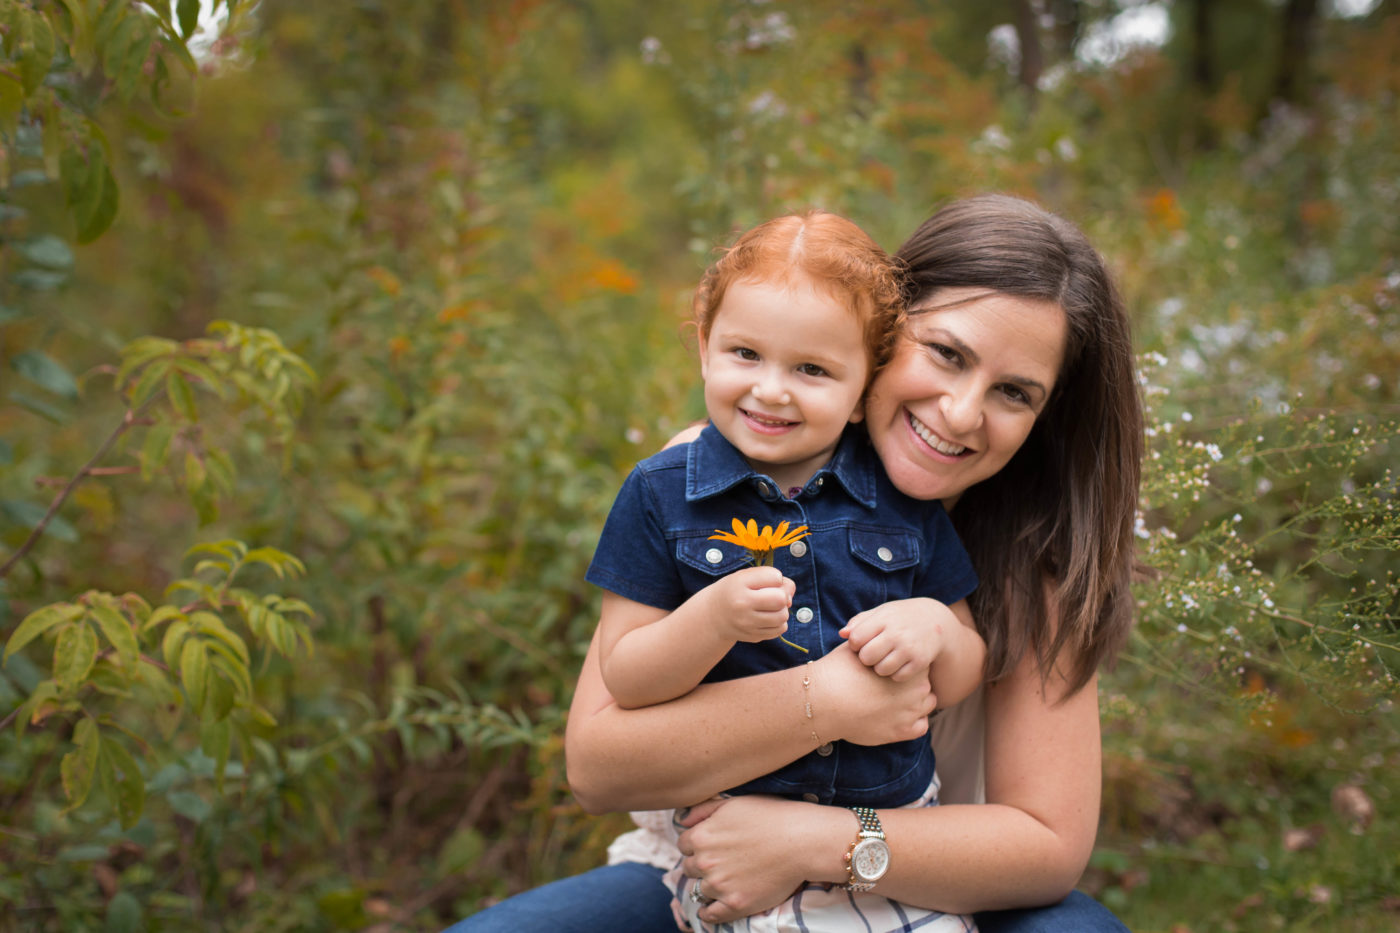 minisession_wilmette_family_photography-1400x933 (1).jpg